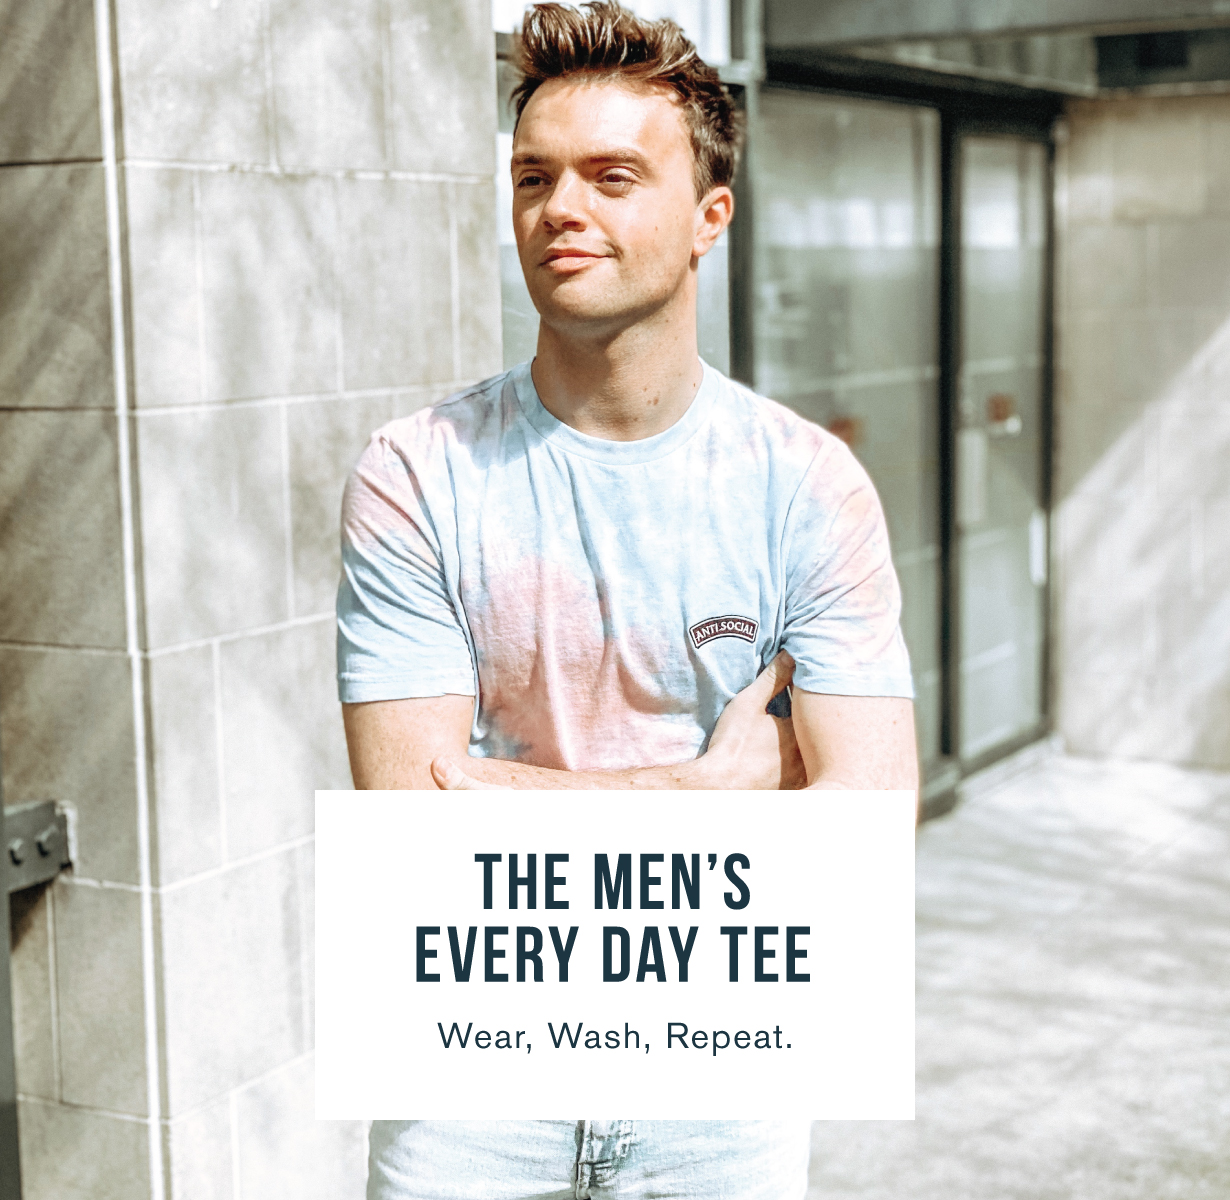 The men's every day tee. Wear, wash, repeat.